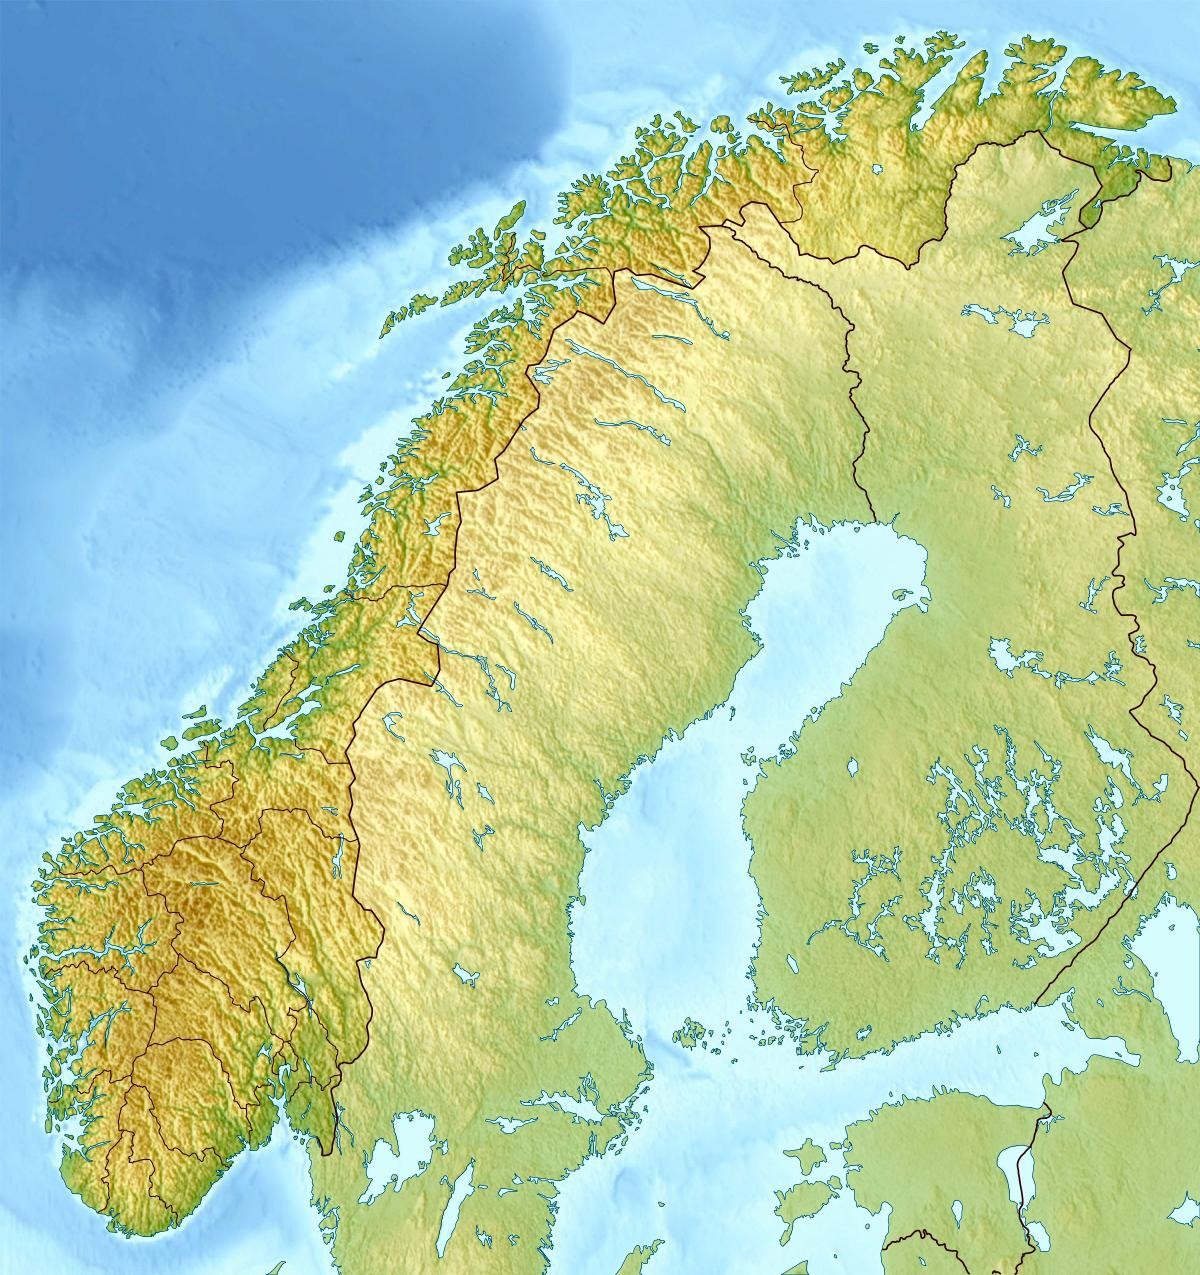 Norway Topographic Map Norway Topo Map Northern Europe Europe